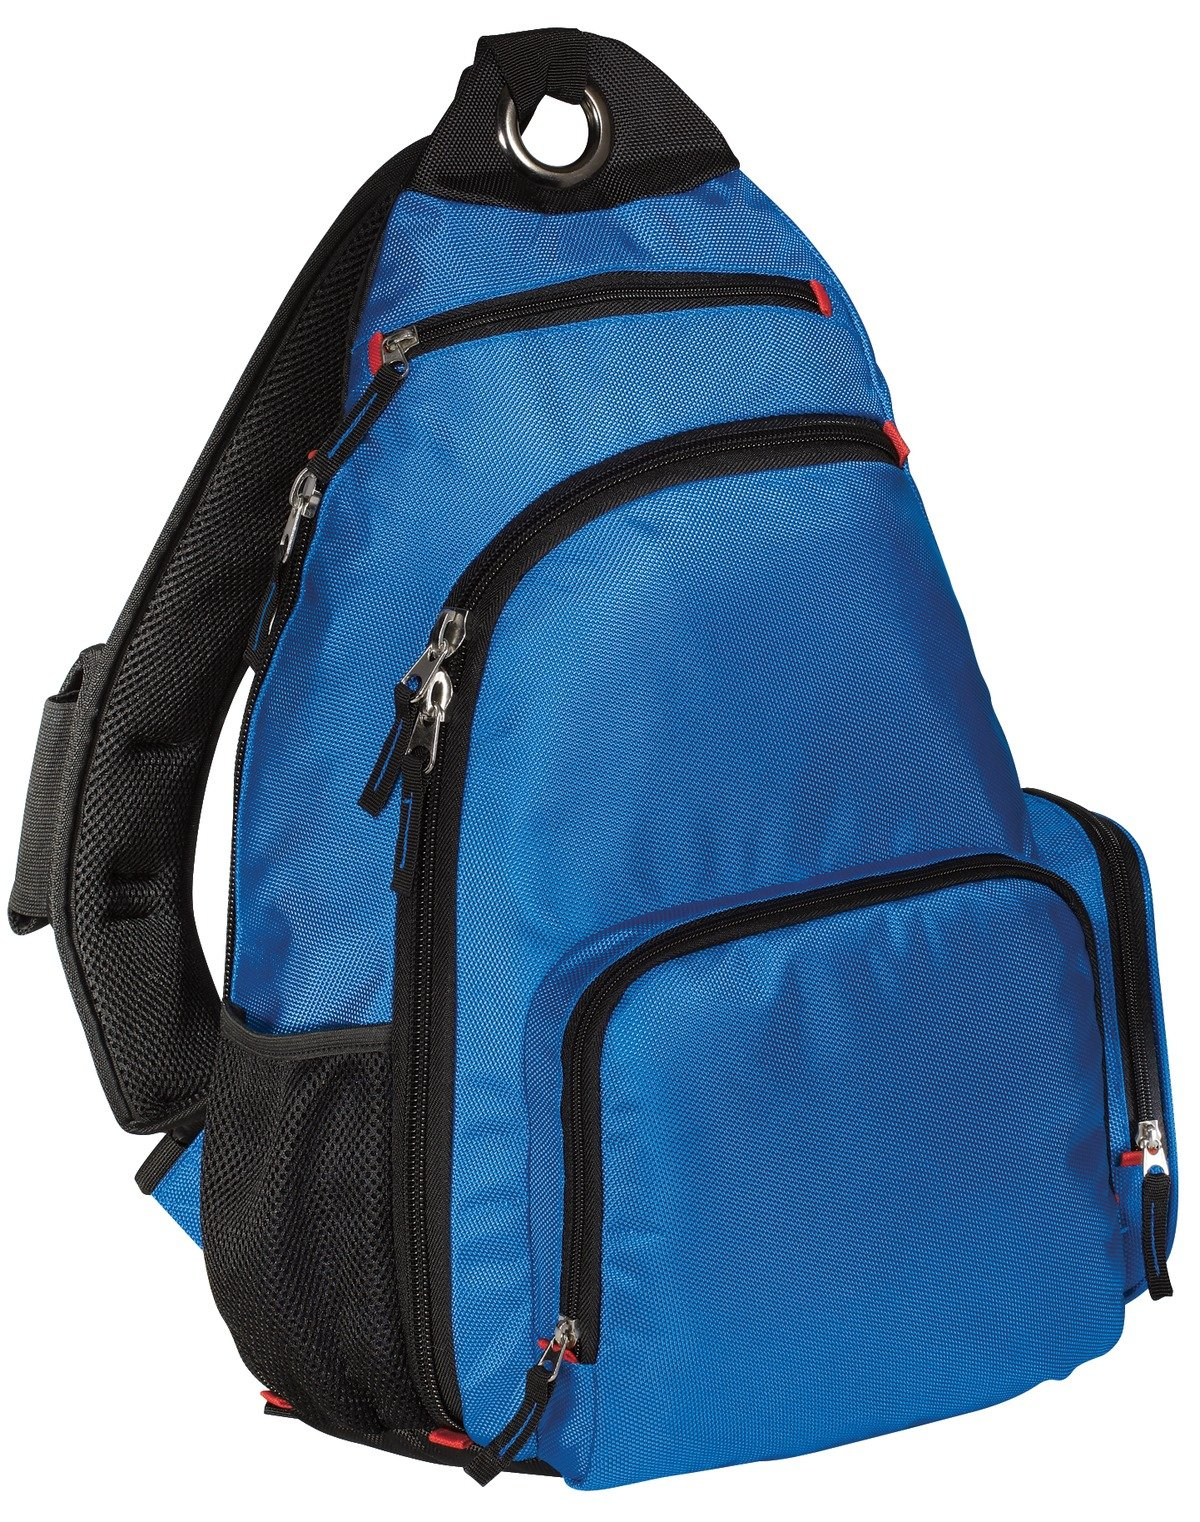 Port Authority luggage-and-bags Sling Pack OSFA Snorkel Blue